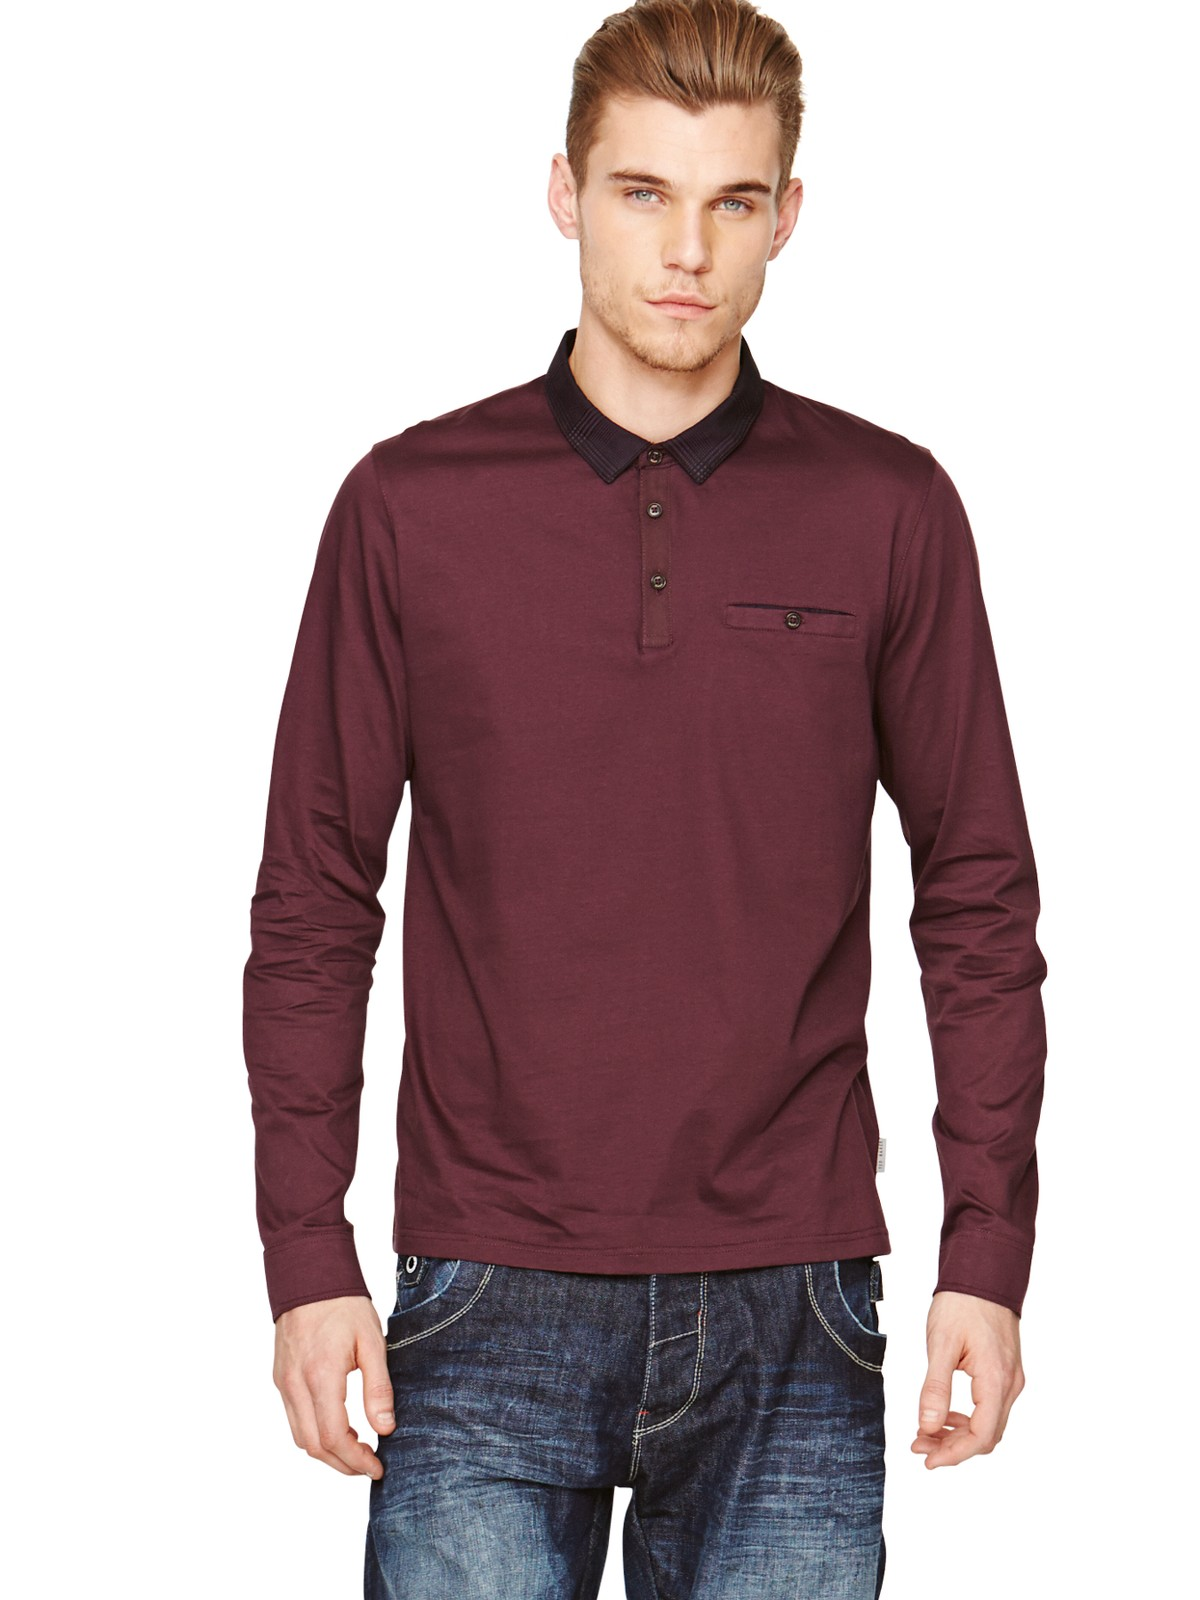 Ted baker ted baker mens chewy long sleeve polo shirt in for Long sleeve purple polo shirt